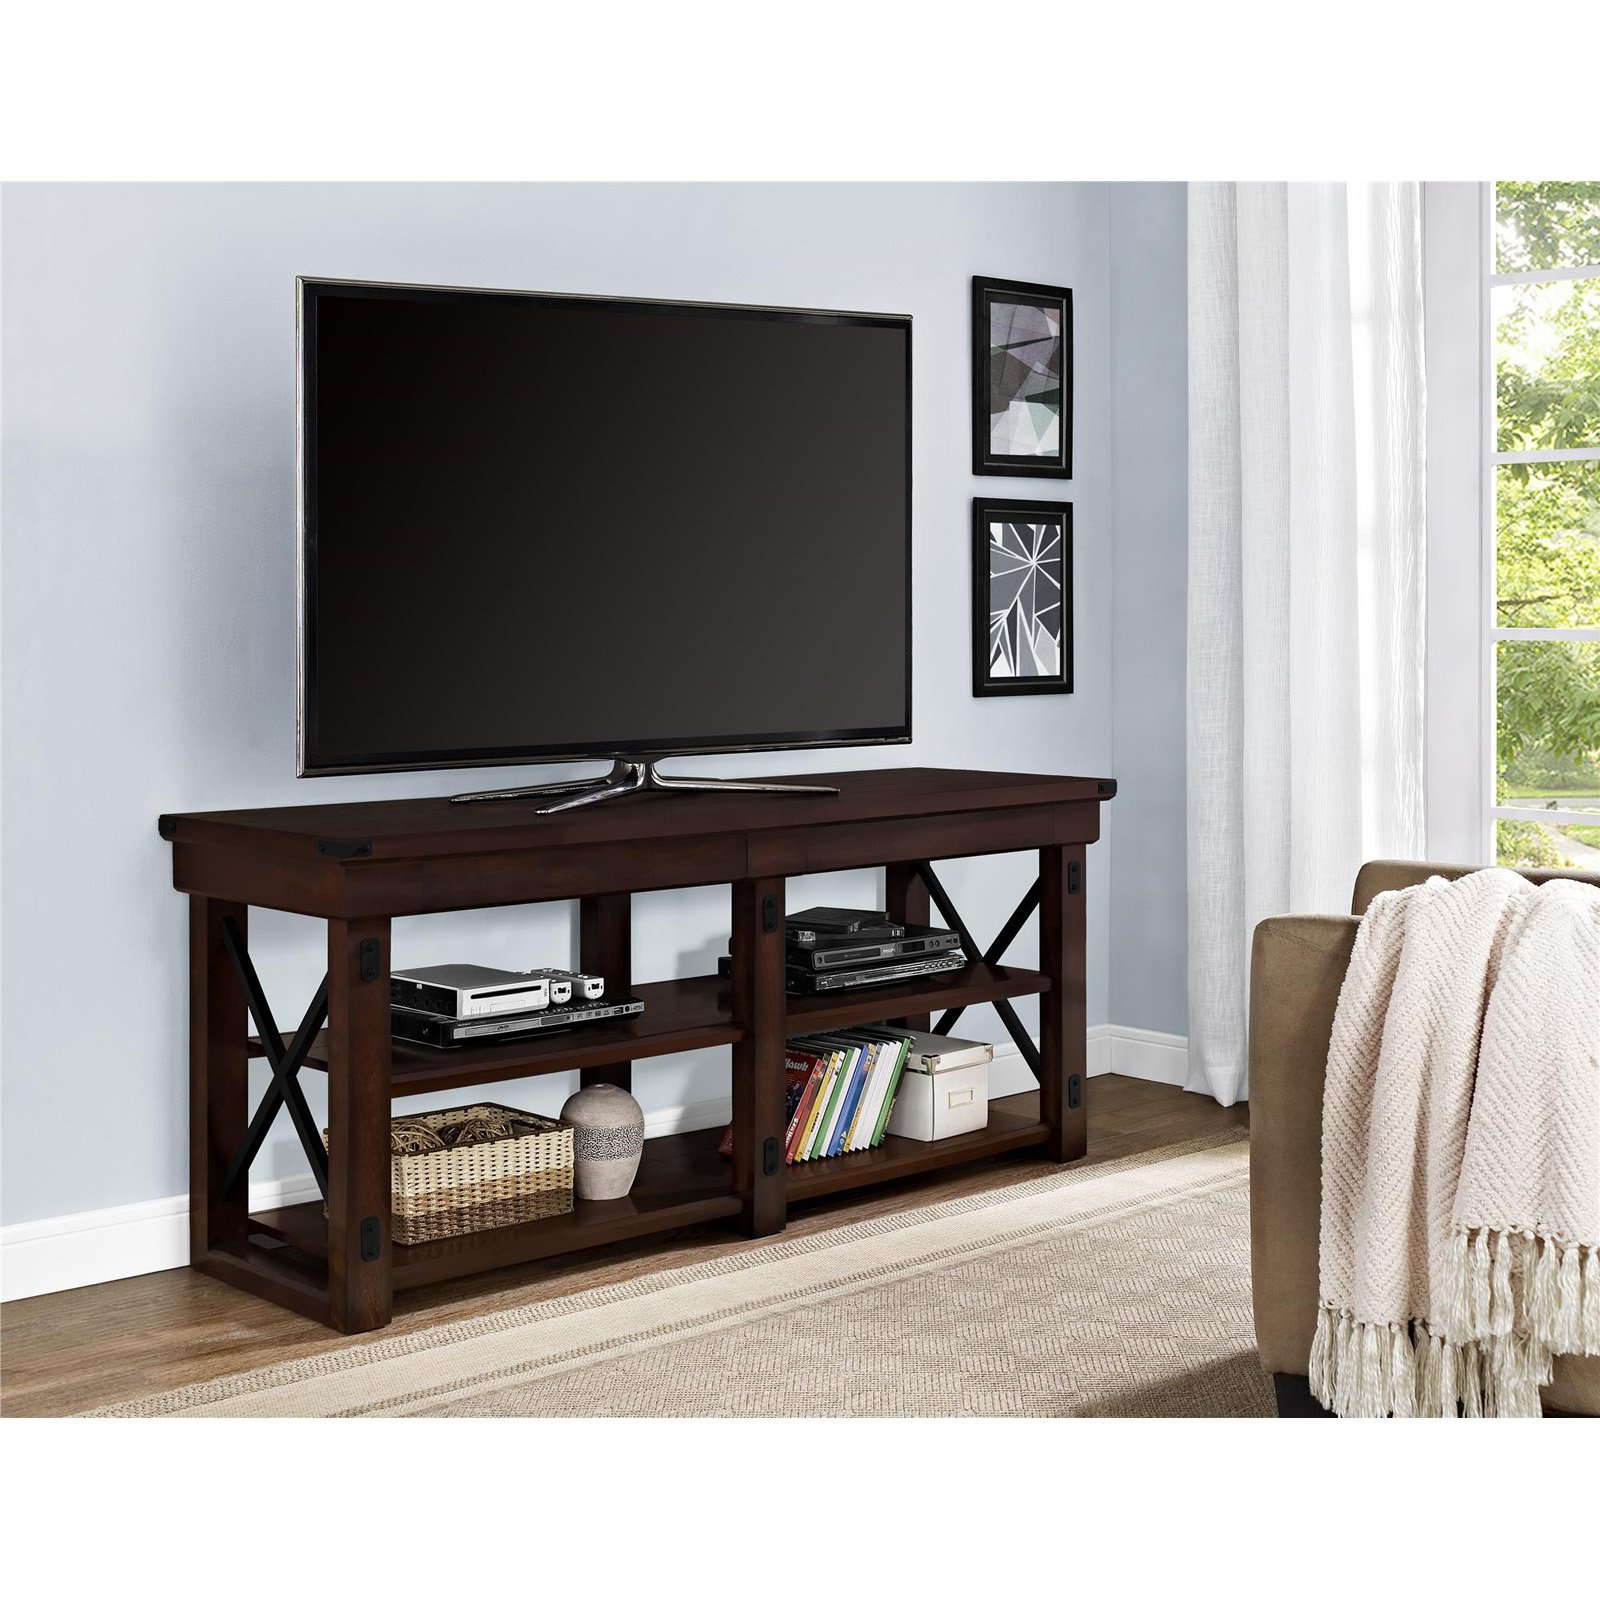 "Ameriwood Home Wildwood Wood Veneer TV Stand for TVs up to 50"" Wide, Espresso by Ameriwood Home"